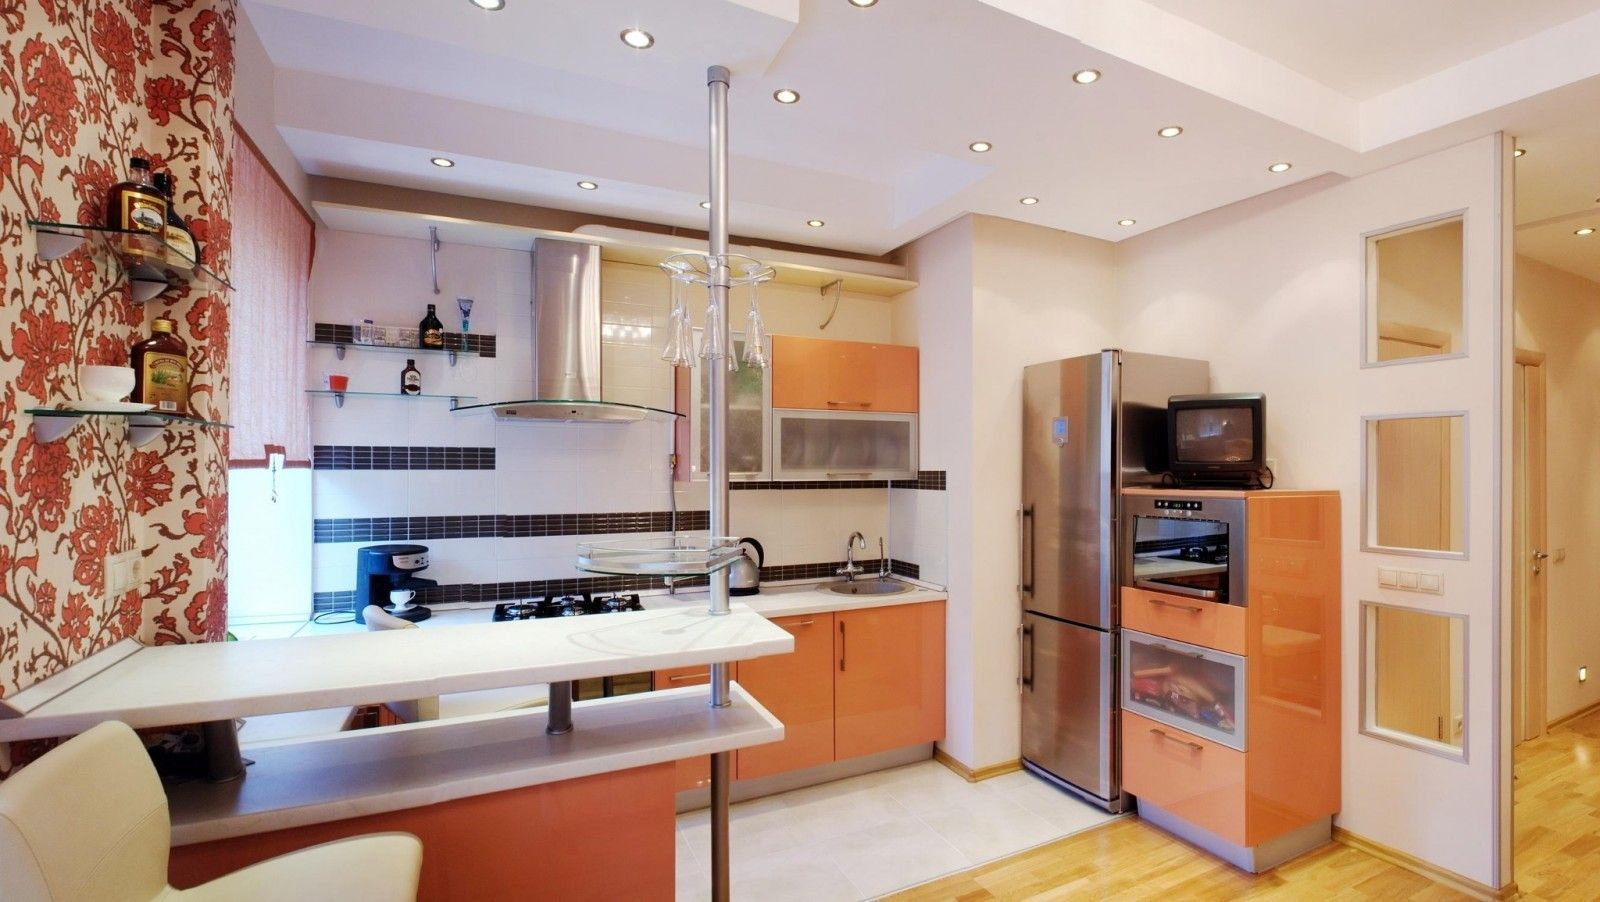 Kitchen space with bar counter at the back wall of the living room